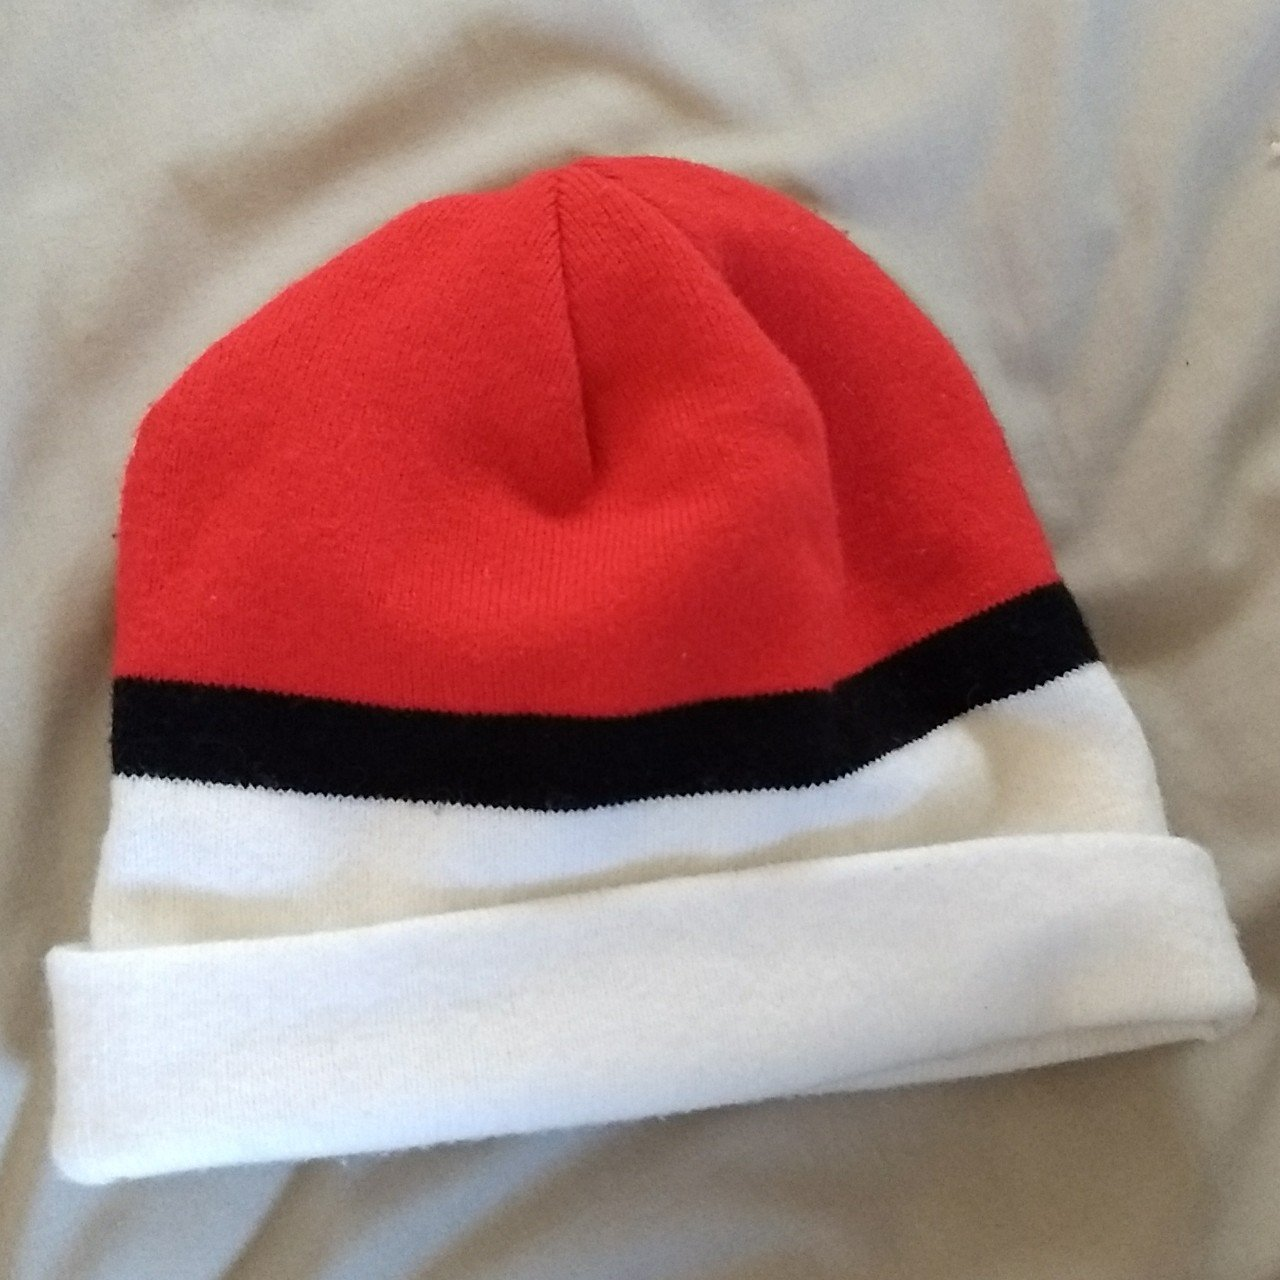 Pokeball Pokemon Beanie Hat 100% Authentic. 10 10 is  4 Pm - Depop 33fa664586a7